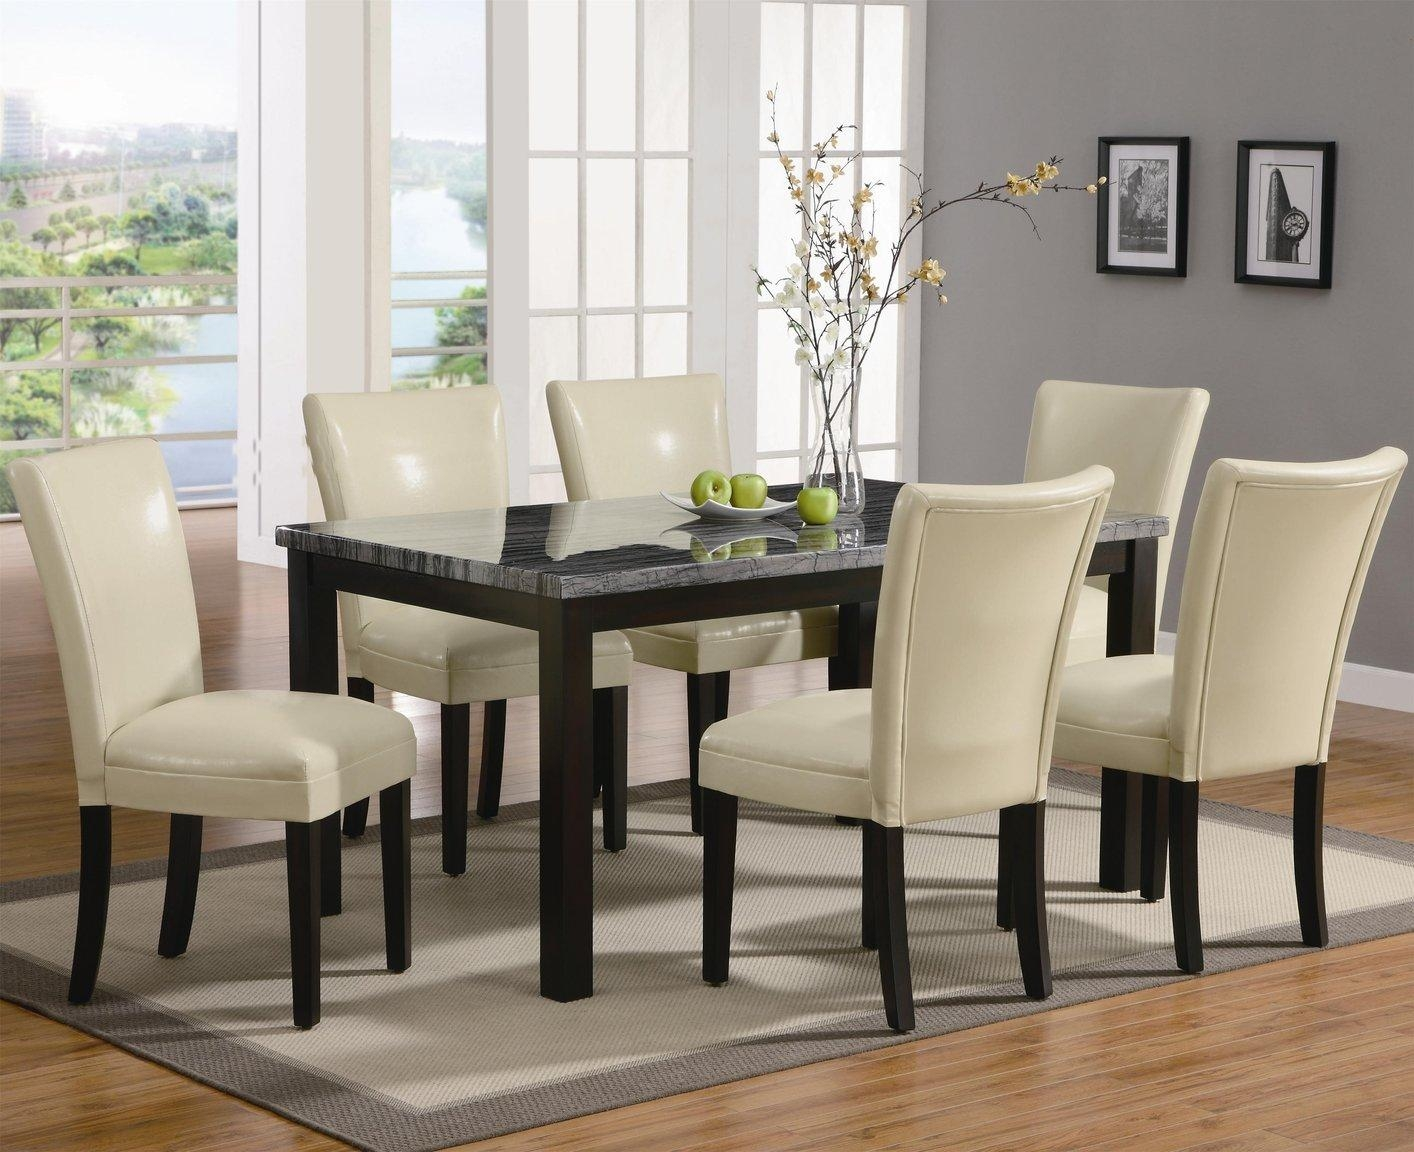 Furniture: Armless Chair Slipcover For Room With Unique Richness Inside Dining Sofa Chairs (View 20 of 20)